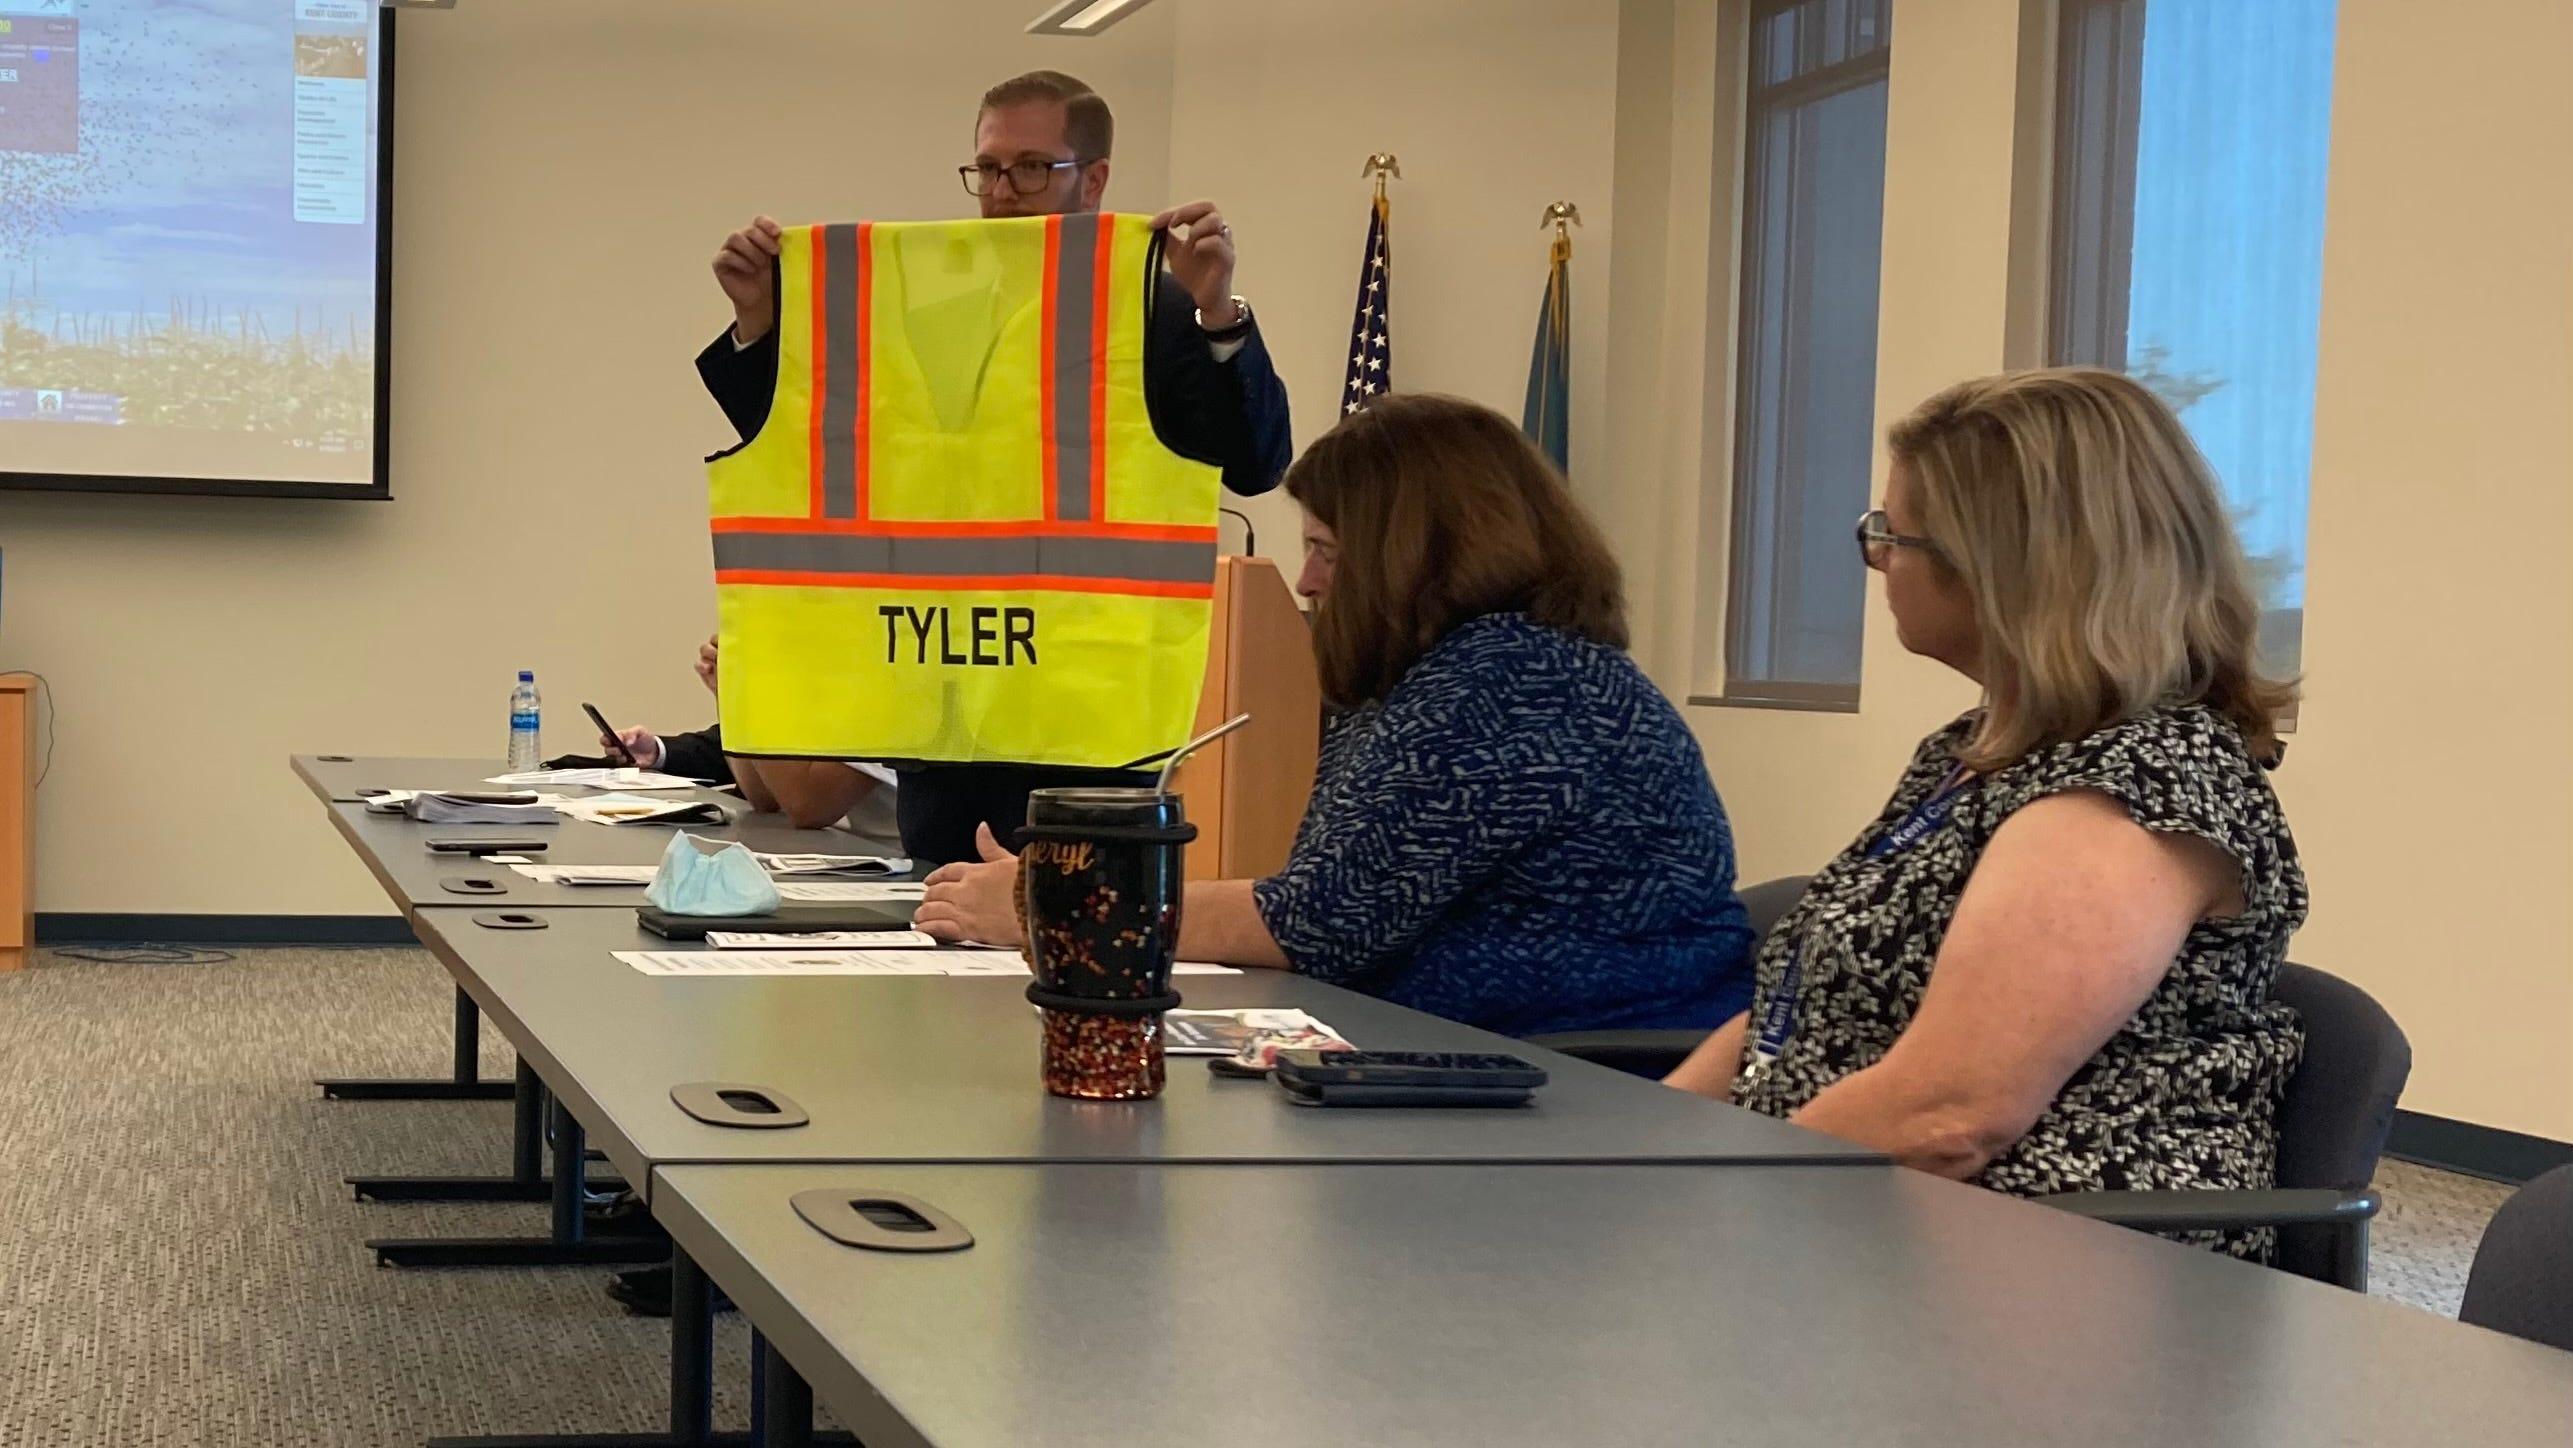 Michael McFarlane, a Tyler Technologies official overseeing Delaware's property tax reassessment effort, displays the vests surveyors are to wear when they visit homes and businesses as part of the process.